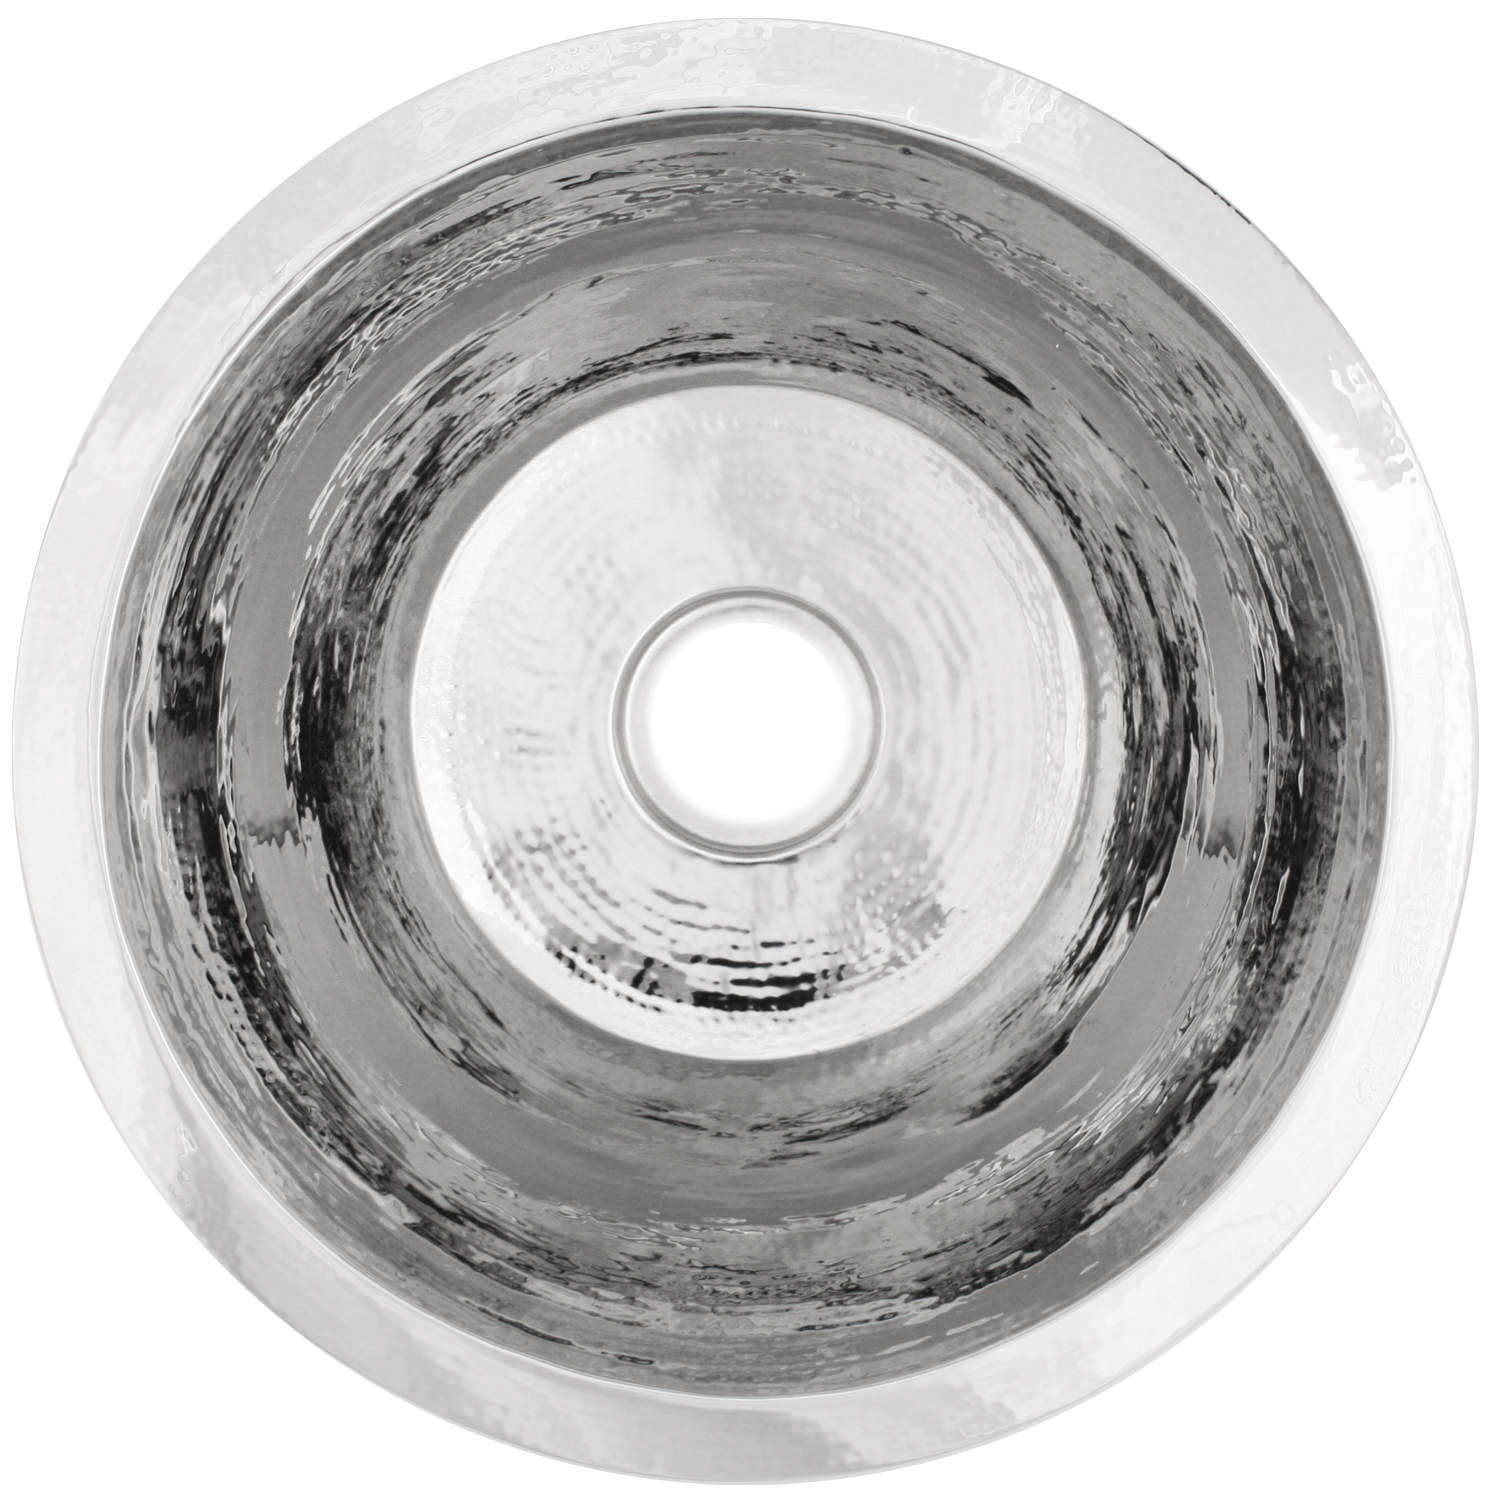 "Linkasink Kitchen Sinks - C017-PS Stainless Steel - Small Flat Round Sink - 3.5"" Drain - Polished"